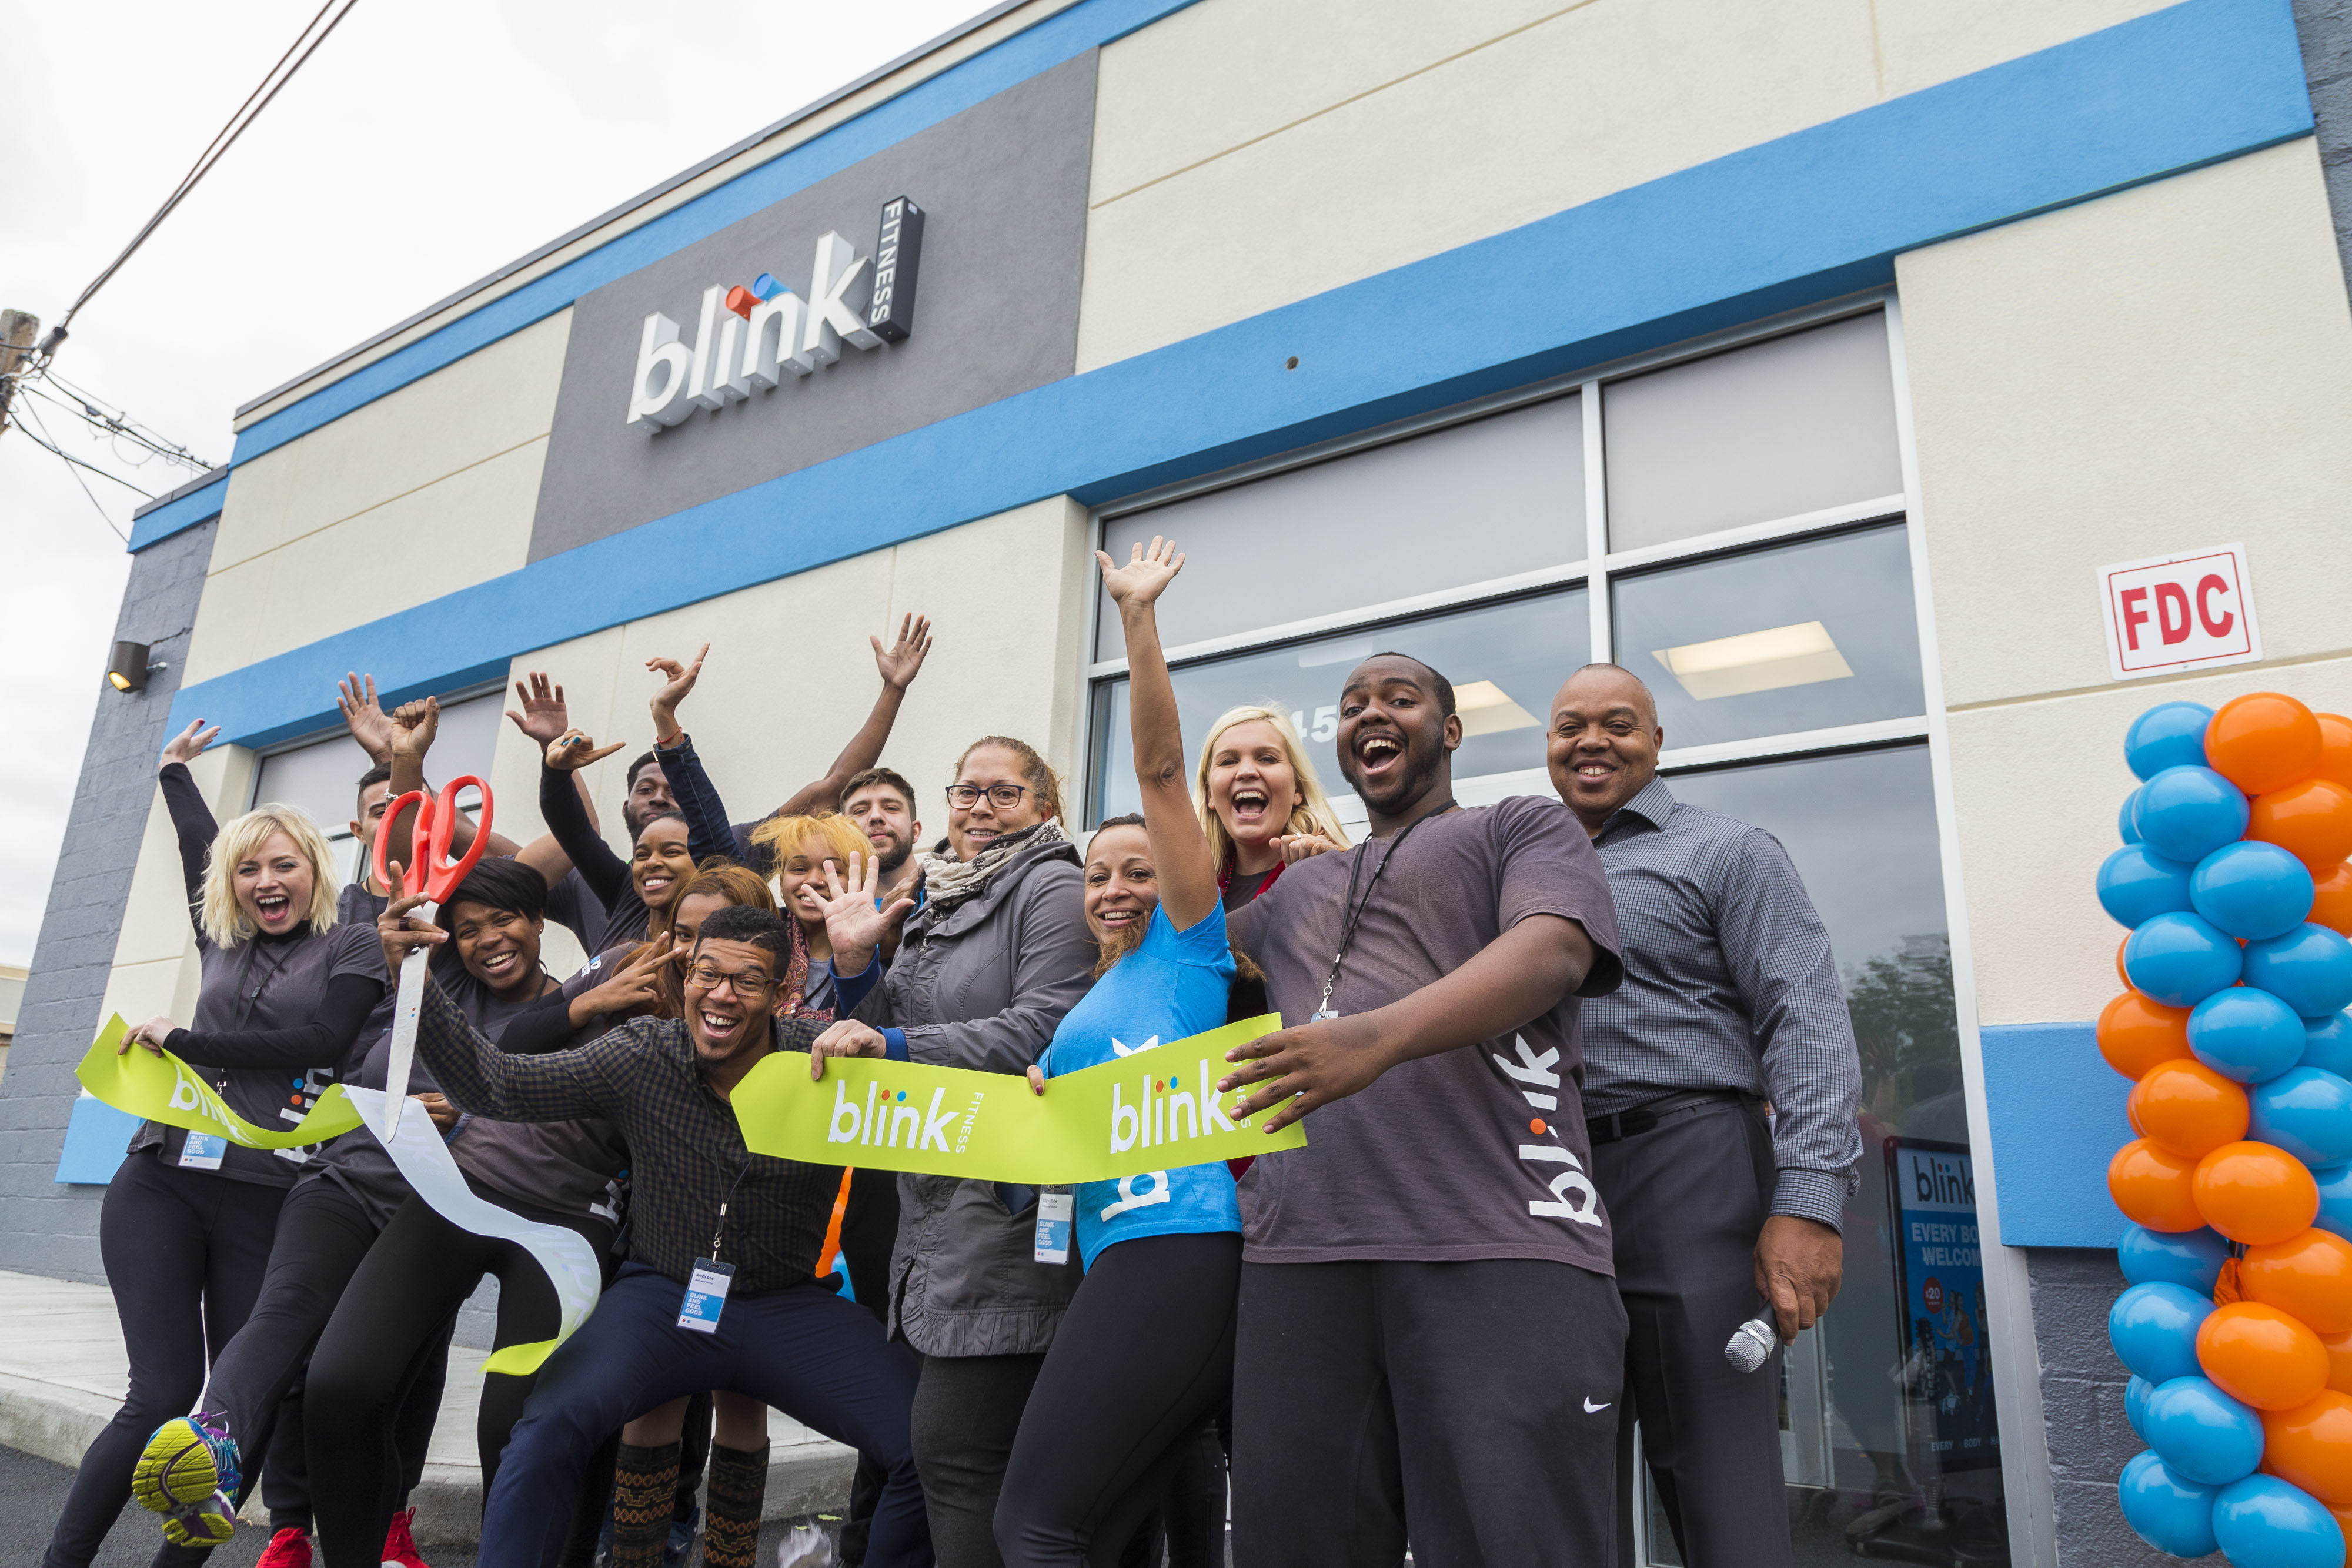 PHOTOS Blink Fitness Opens on Valley Street in South